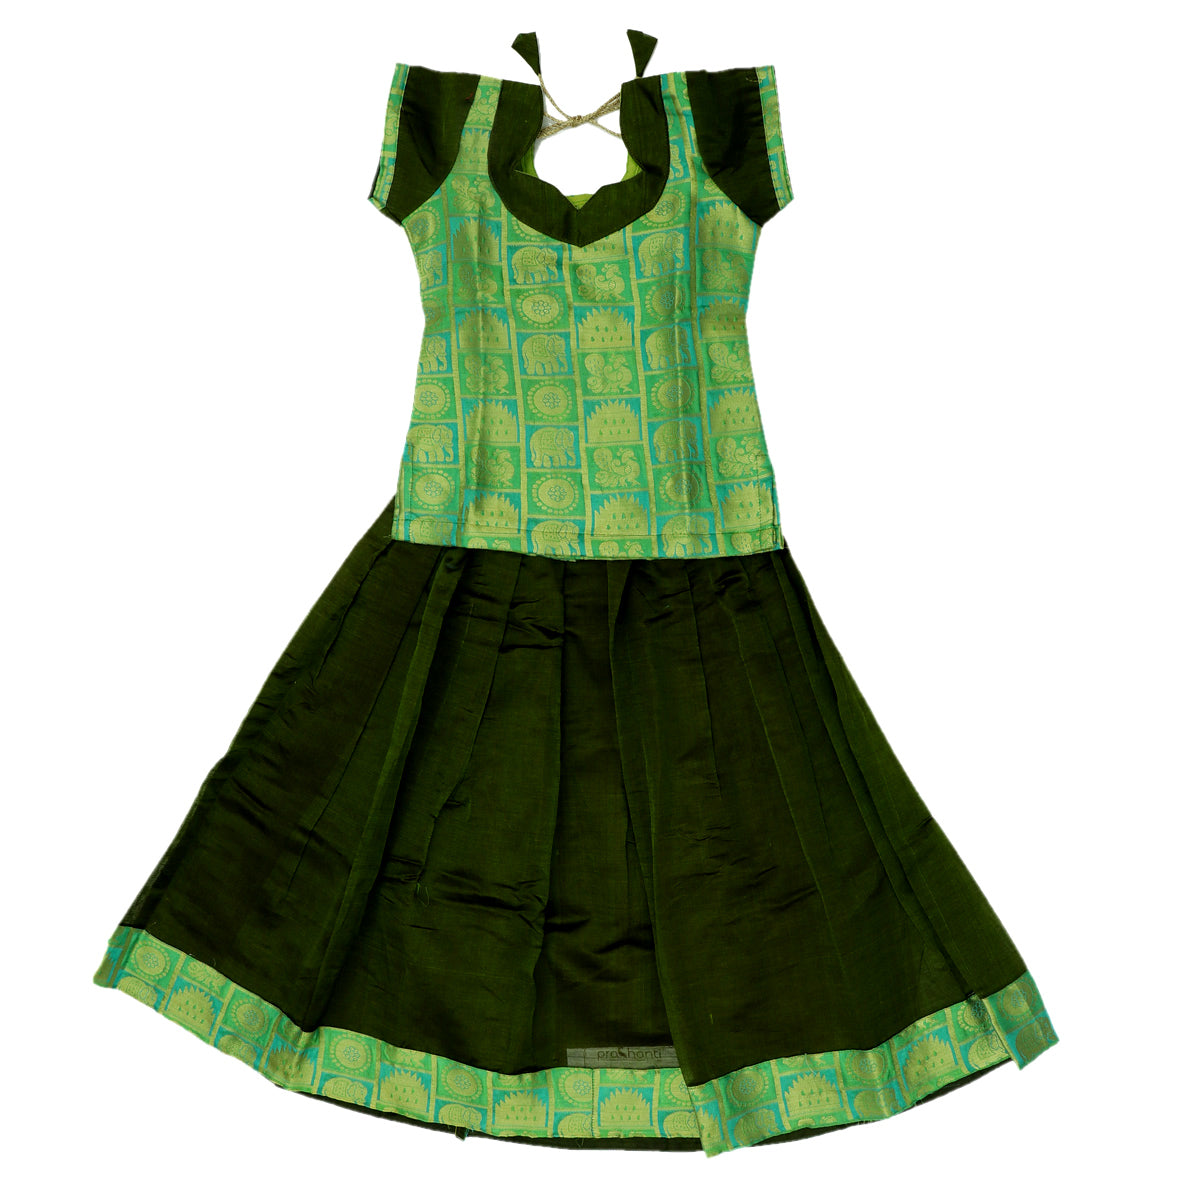 Paavadai Sattai - Light green brocade blouse and Mehandi Green with Simple Zari border ( 4 years)